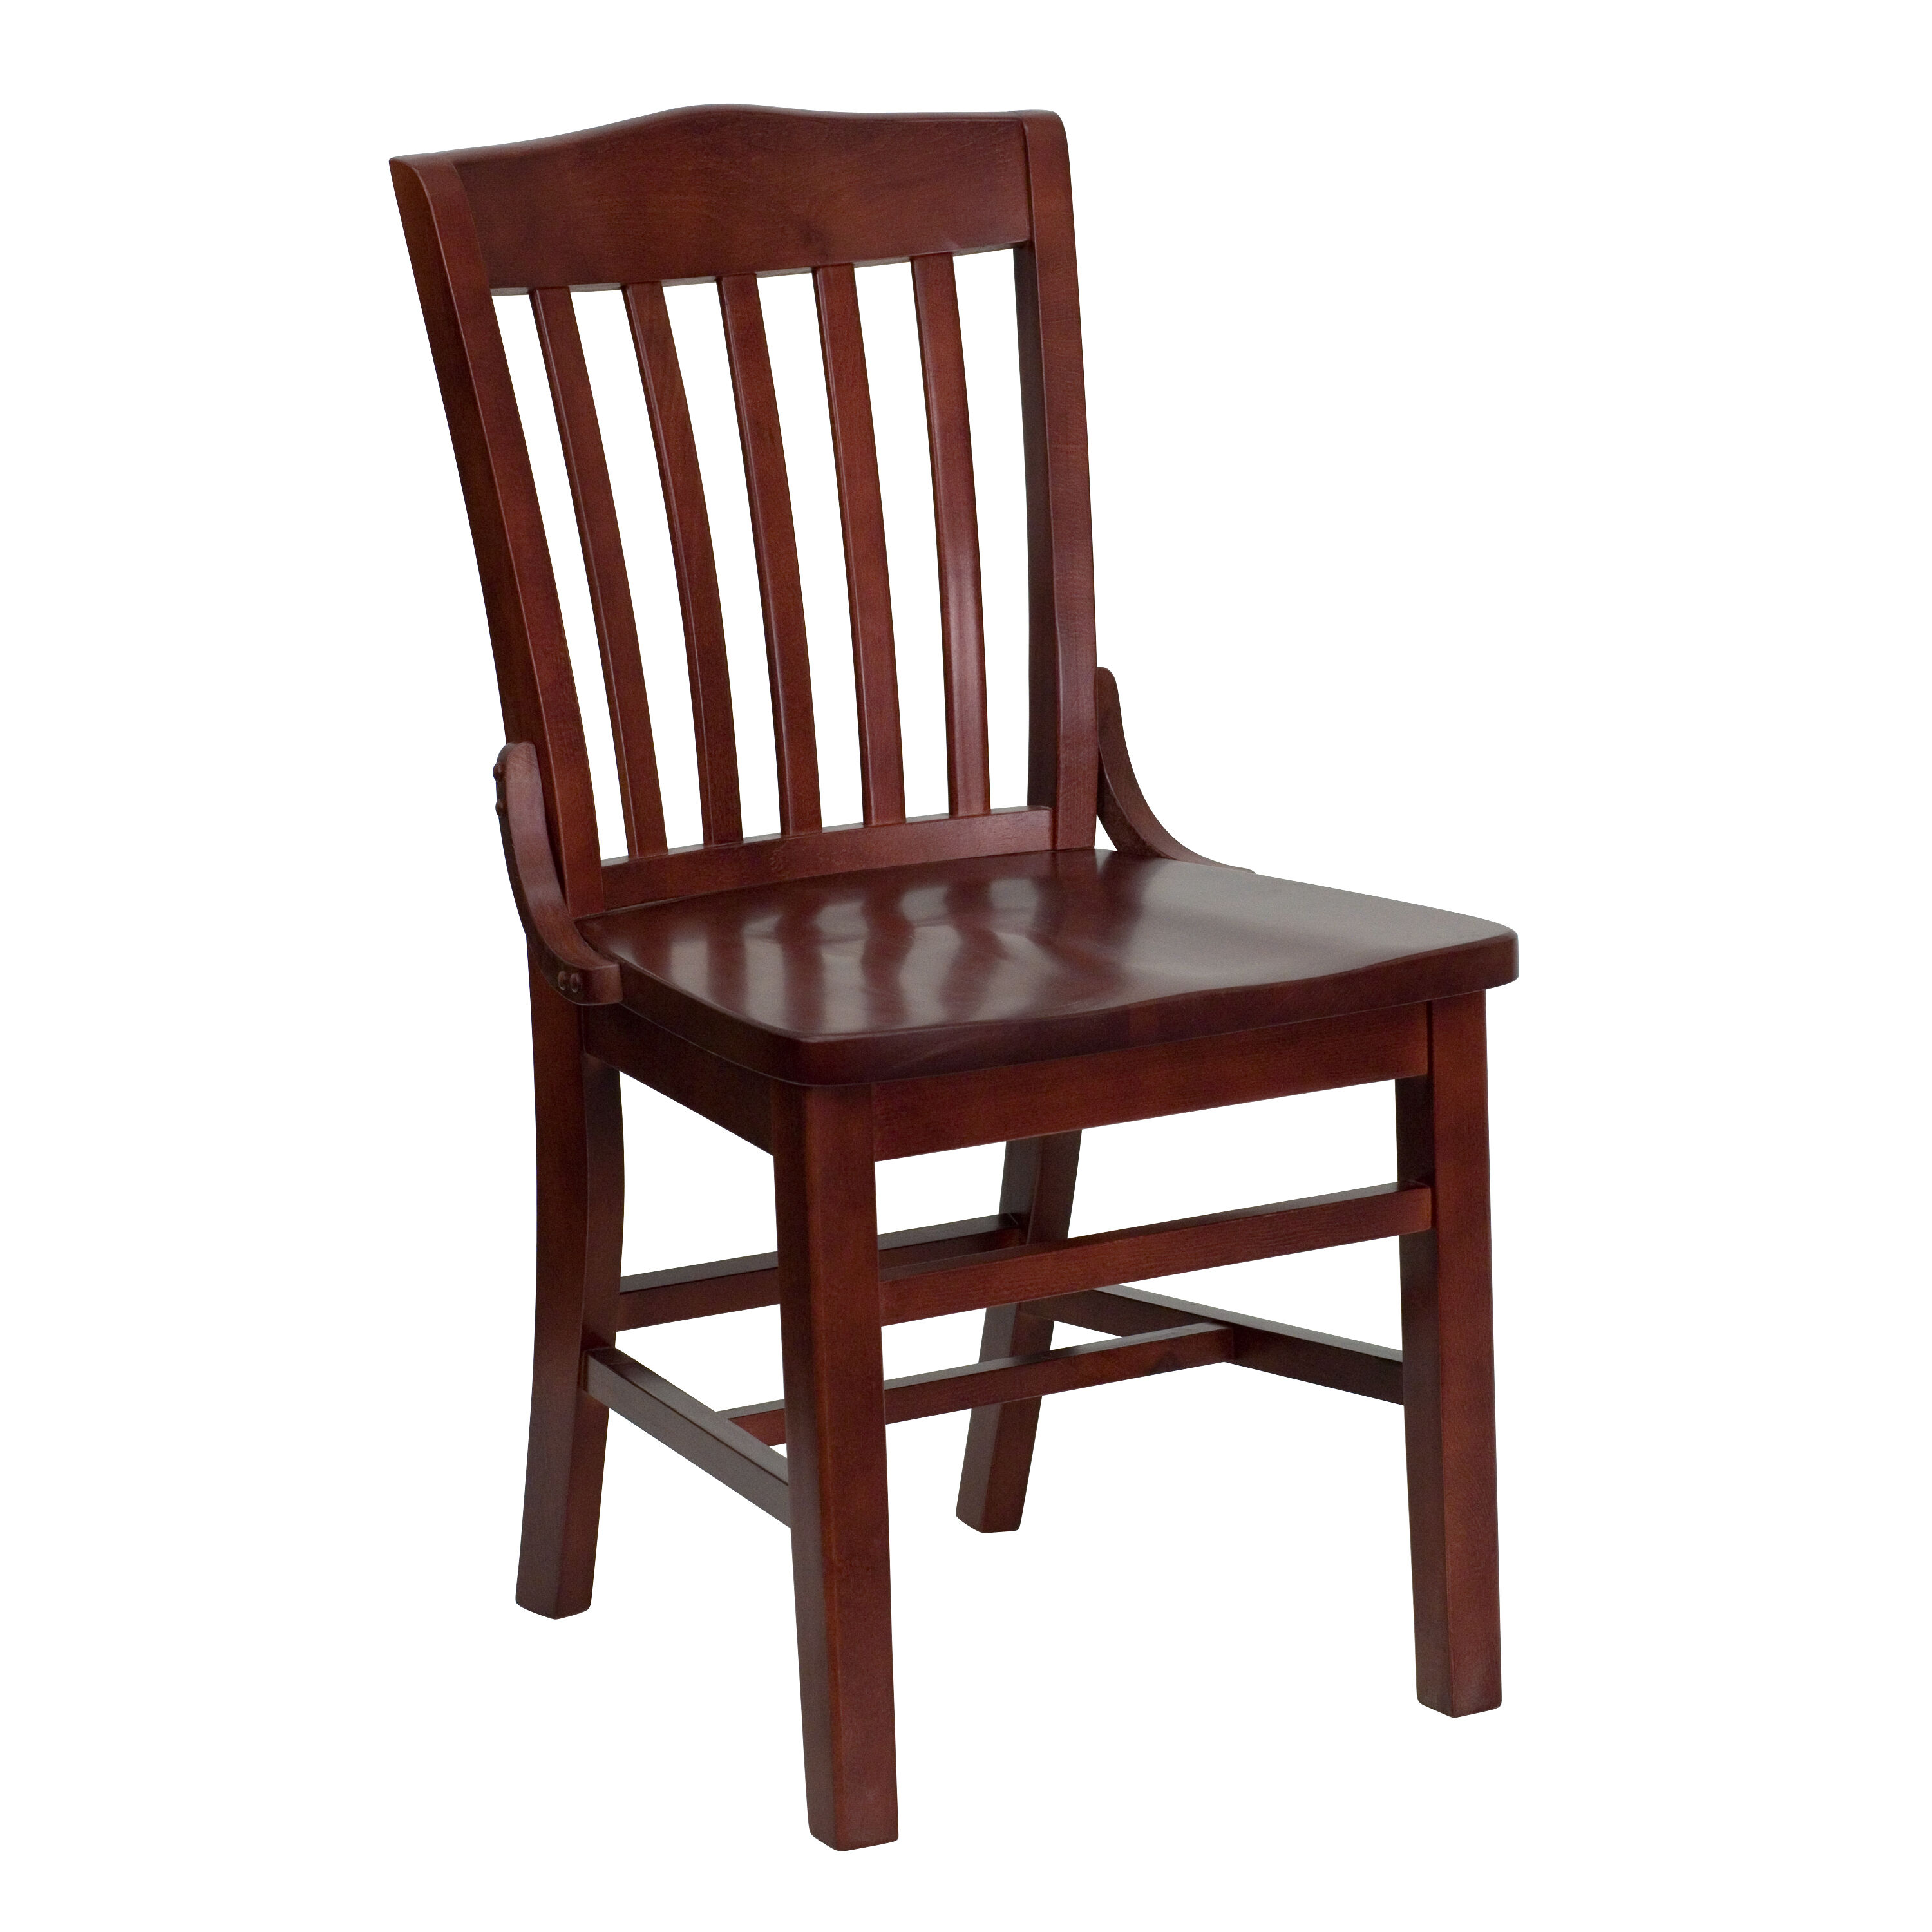 restaurant supply chairs high back mesh office chair with headrest t and d equipment bfdh 7992mbk tdr